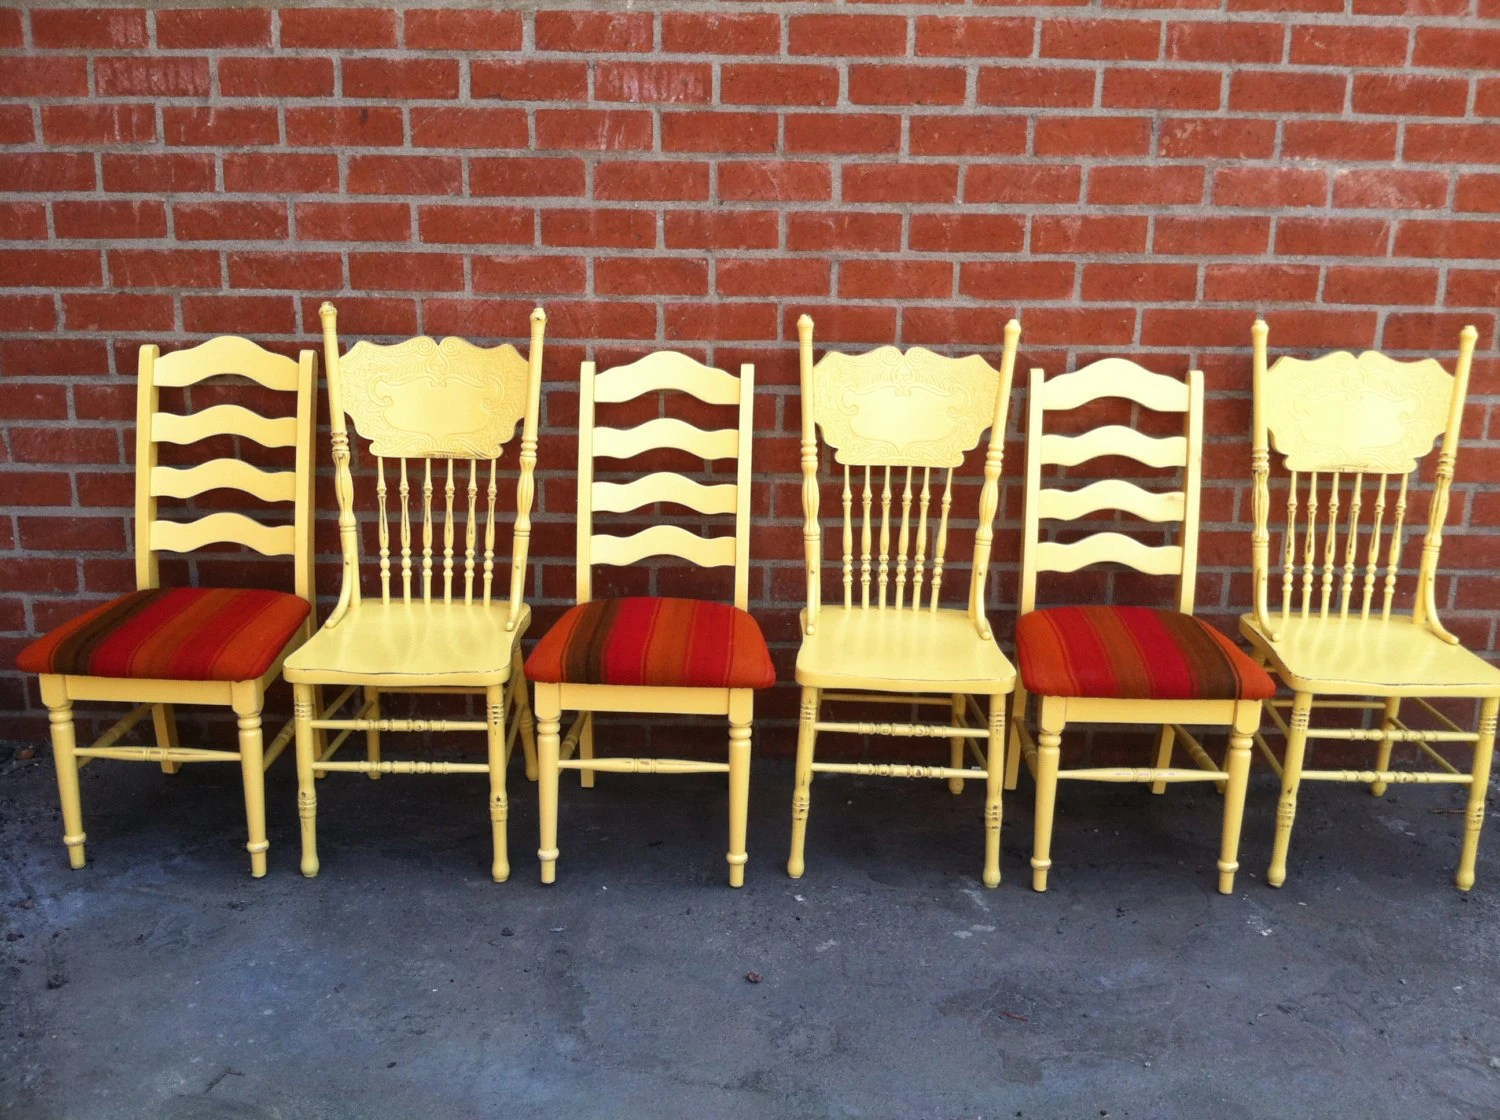 Mismatched Dining Chairs Mismatch Dining Chairscustomupholstered Chairs By